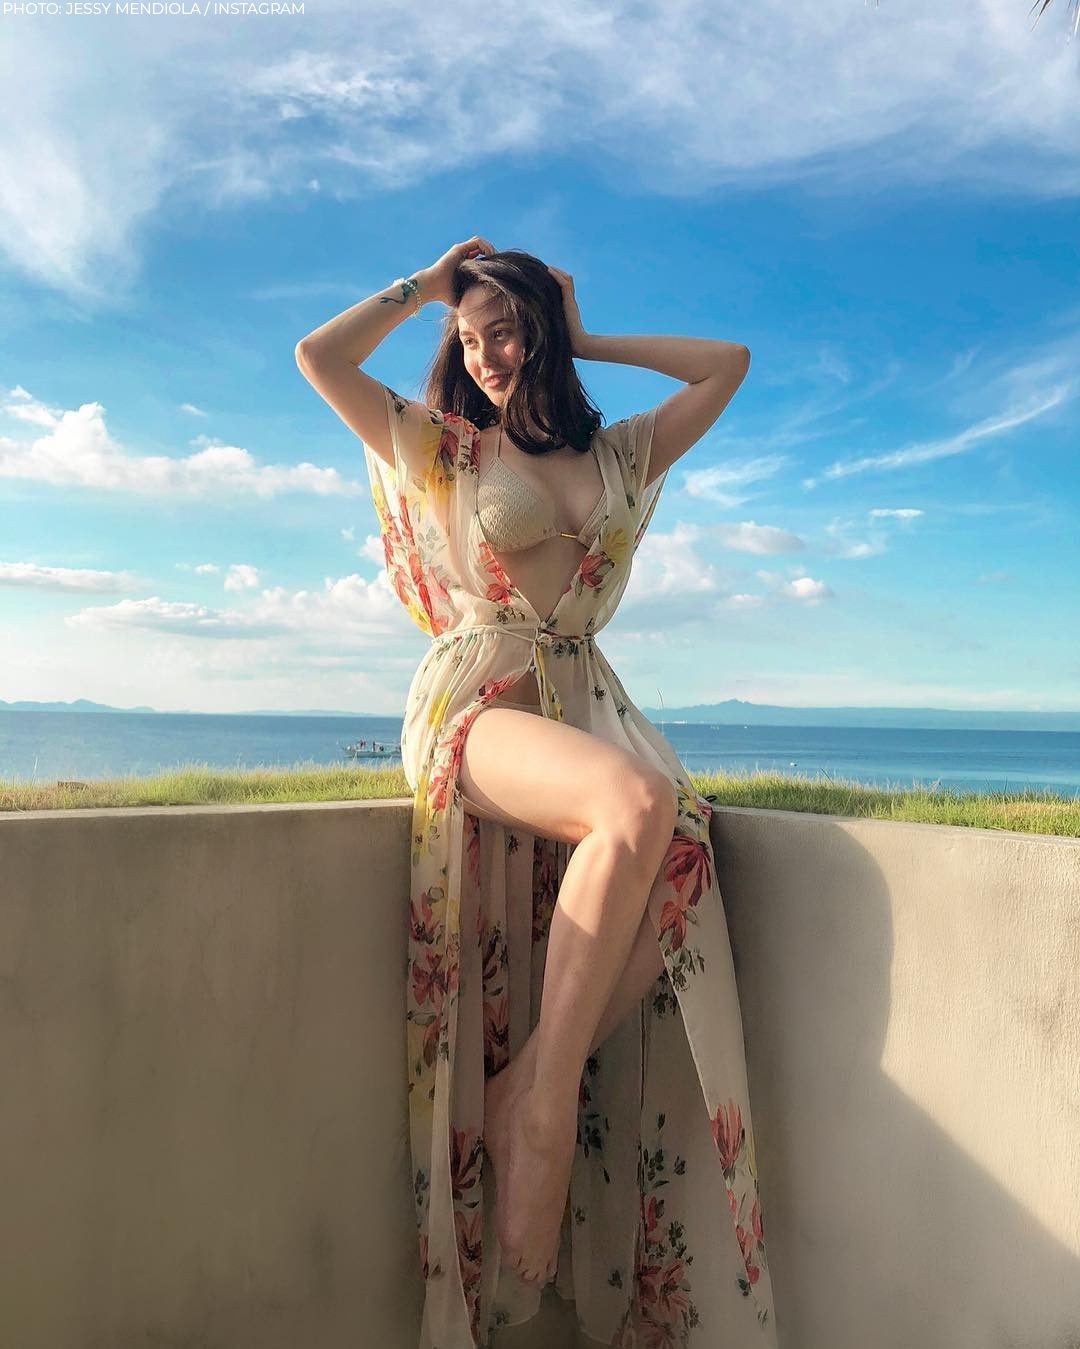 Jessy Mendiola's sexiest moments in photos